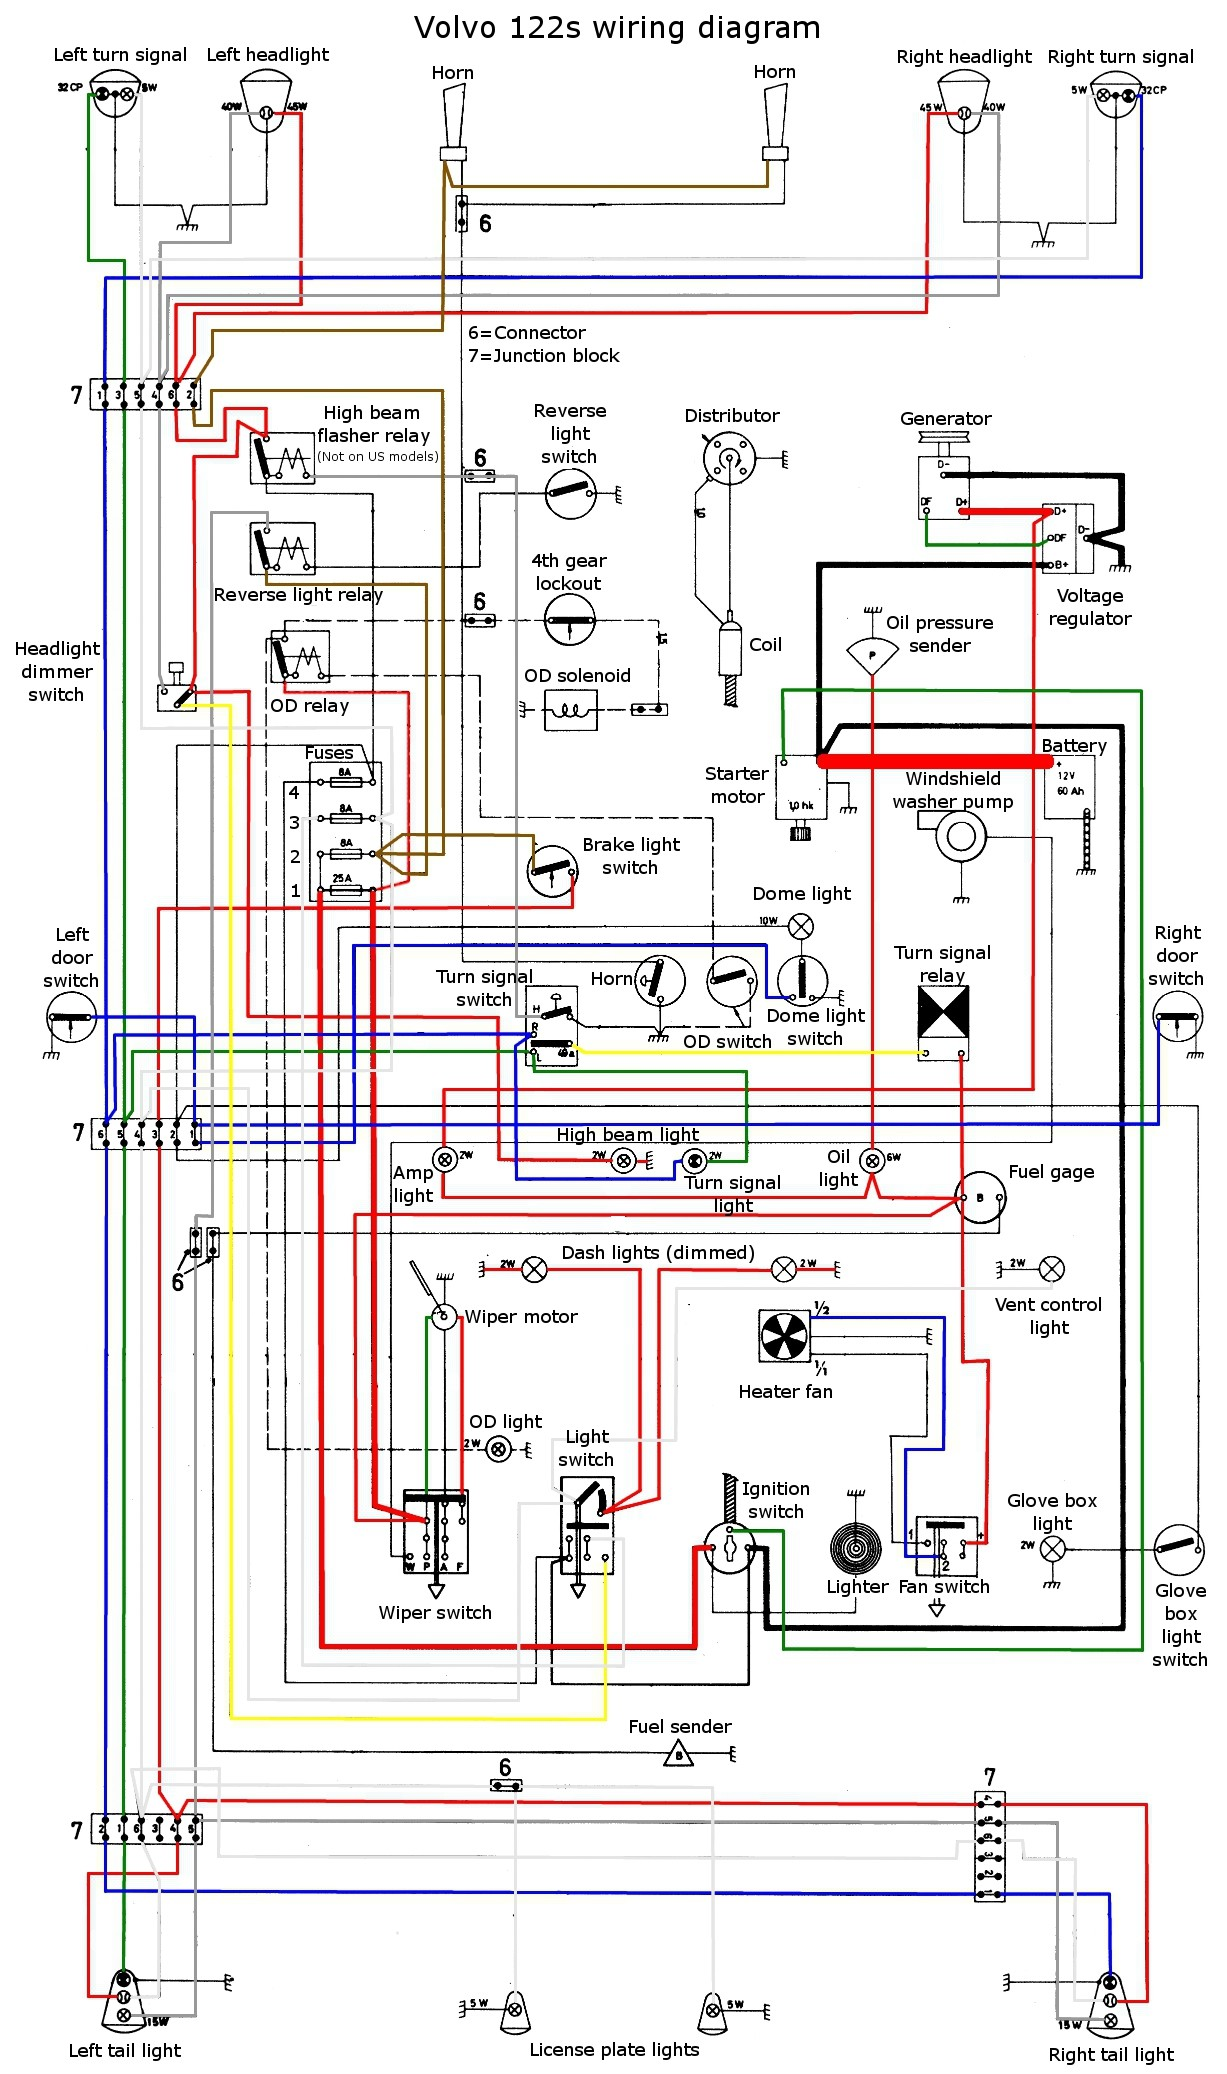 Chrysler Pacifica Engine Diagram Engine Wiring Chrysler Pacifica Wiring Diagram Diagrams Engine